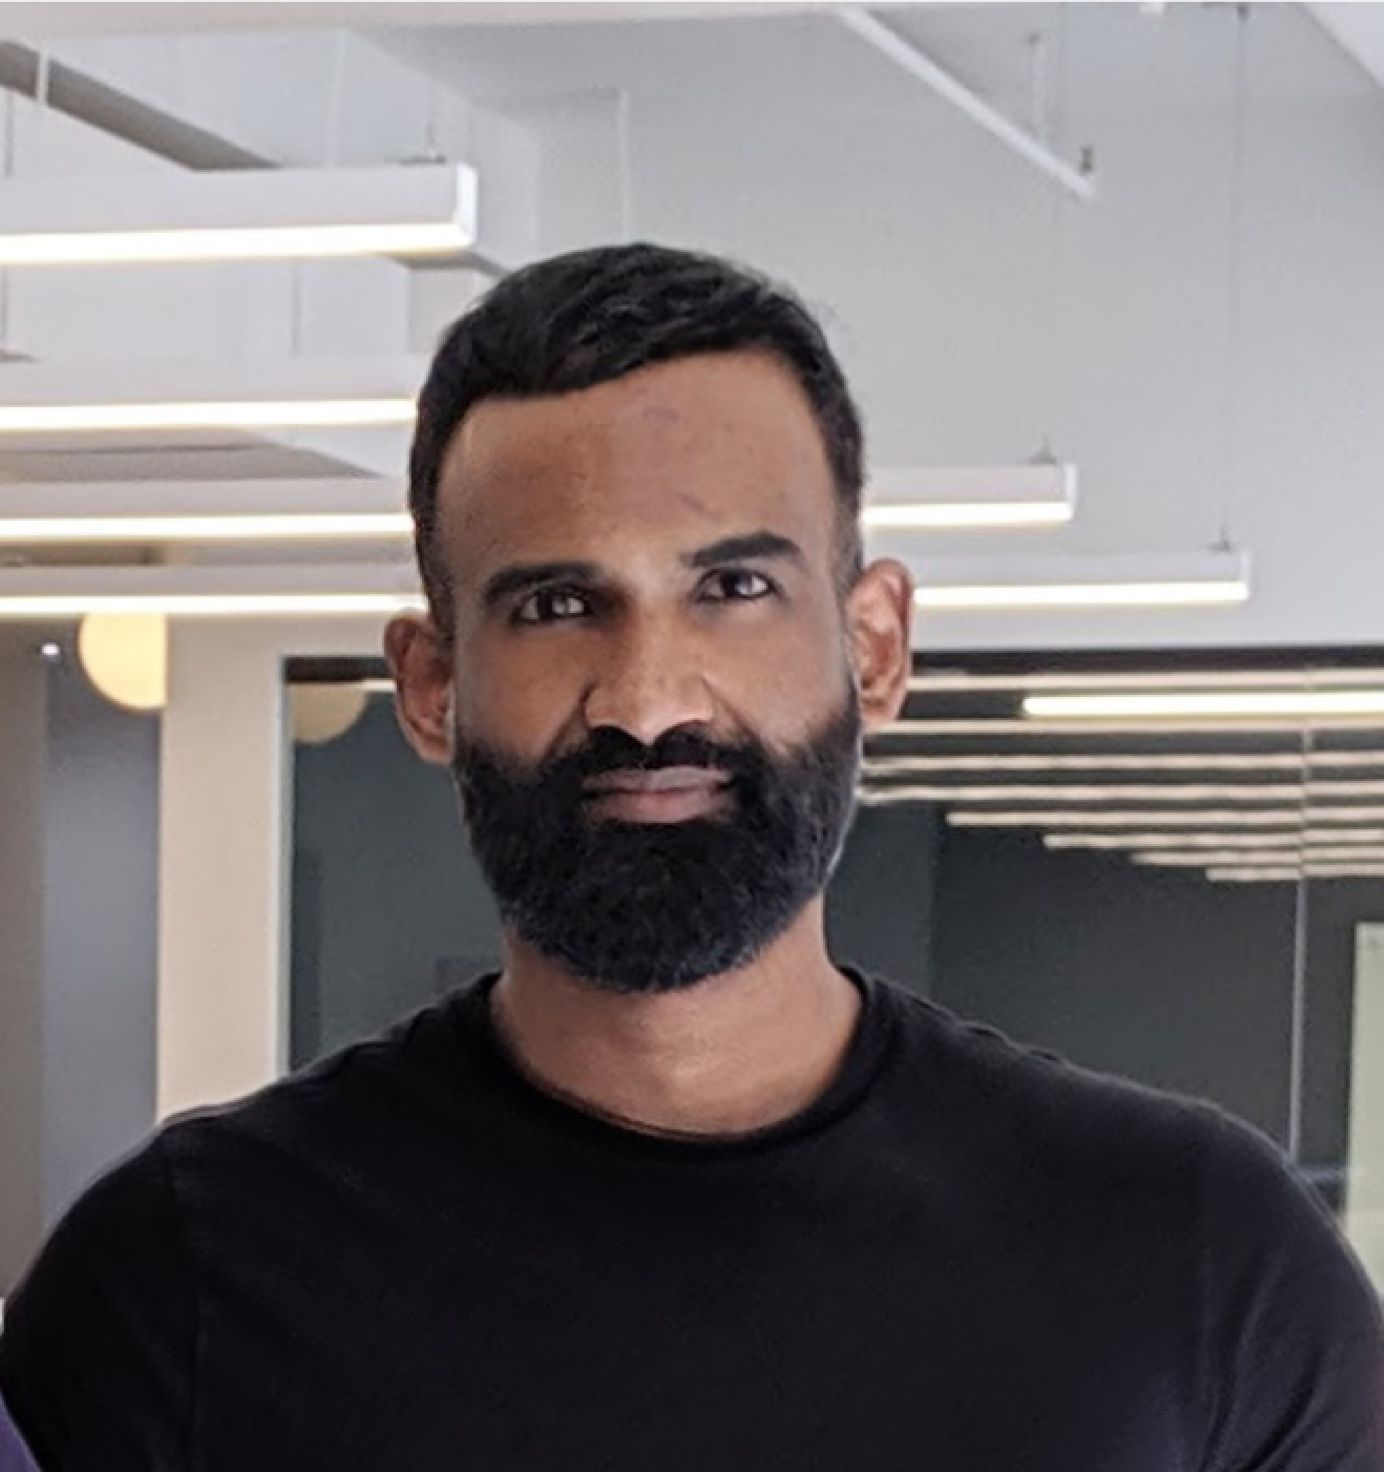 Unioncrate Founder & CEO, Shastri Mahadeo, at Unioncrate HQ in New York.